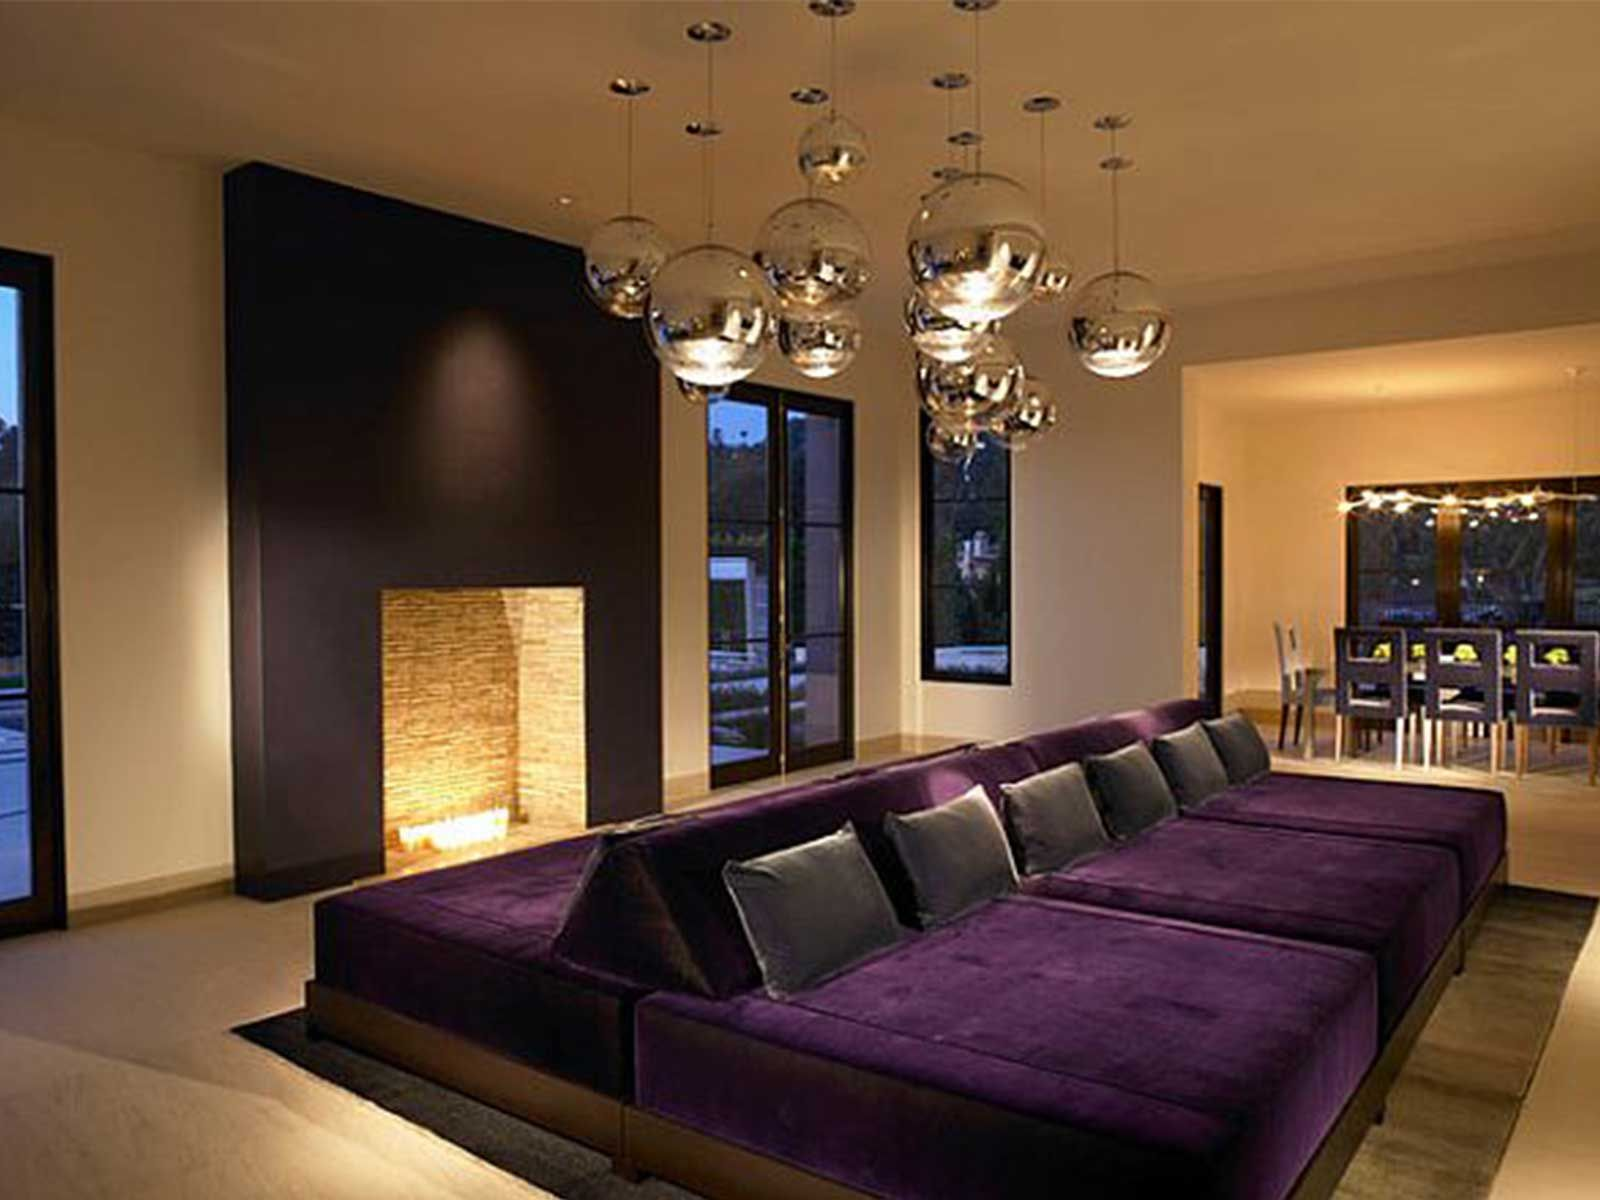 How to make home theater room - Purple Cinema Bed For Home Cinema Dseign Ideas With Warm Fireplace With Soft Interior Lighting Some Theater Room Ideas That Should Always Be Consider